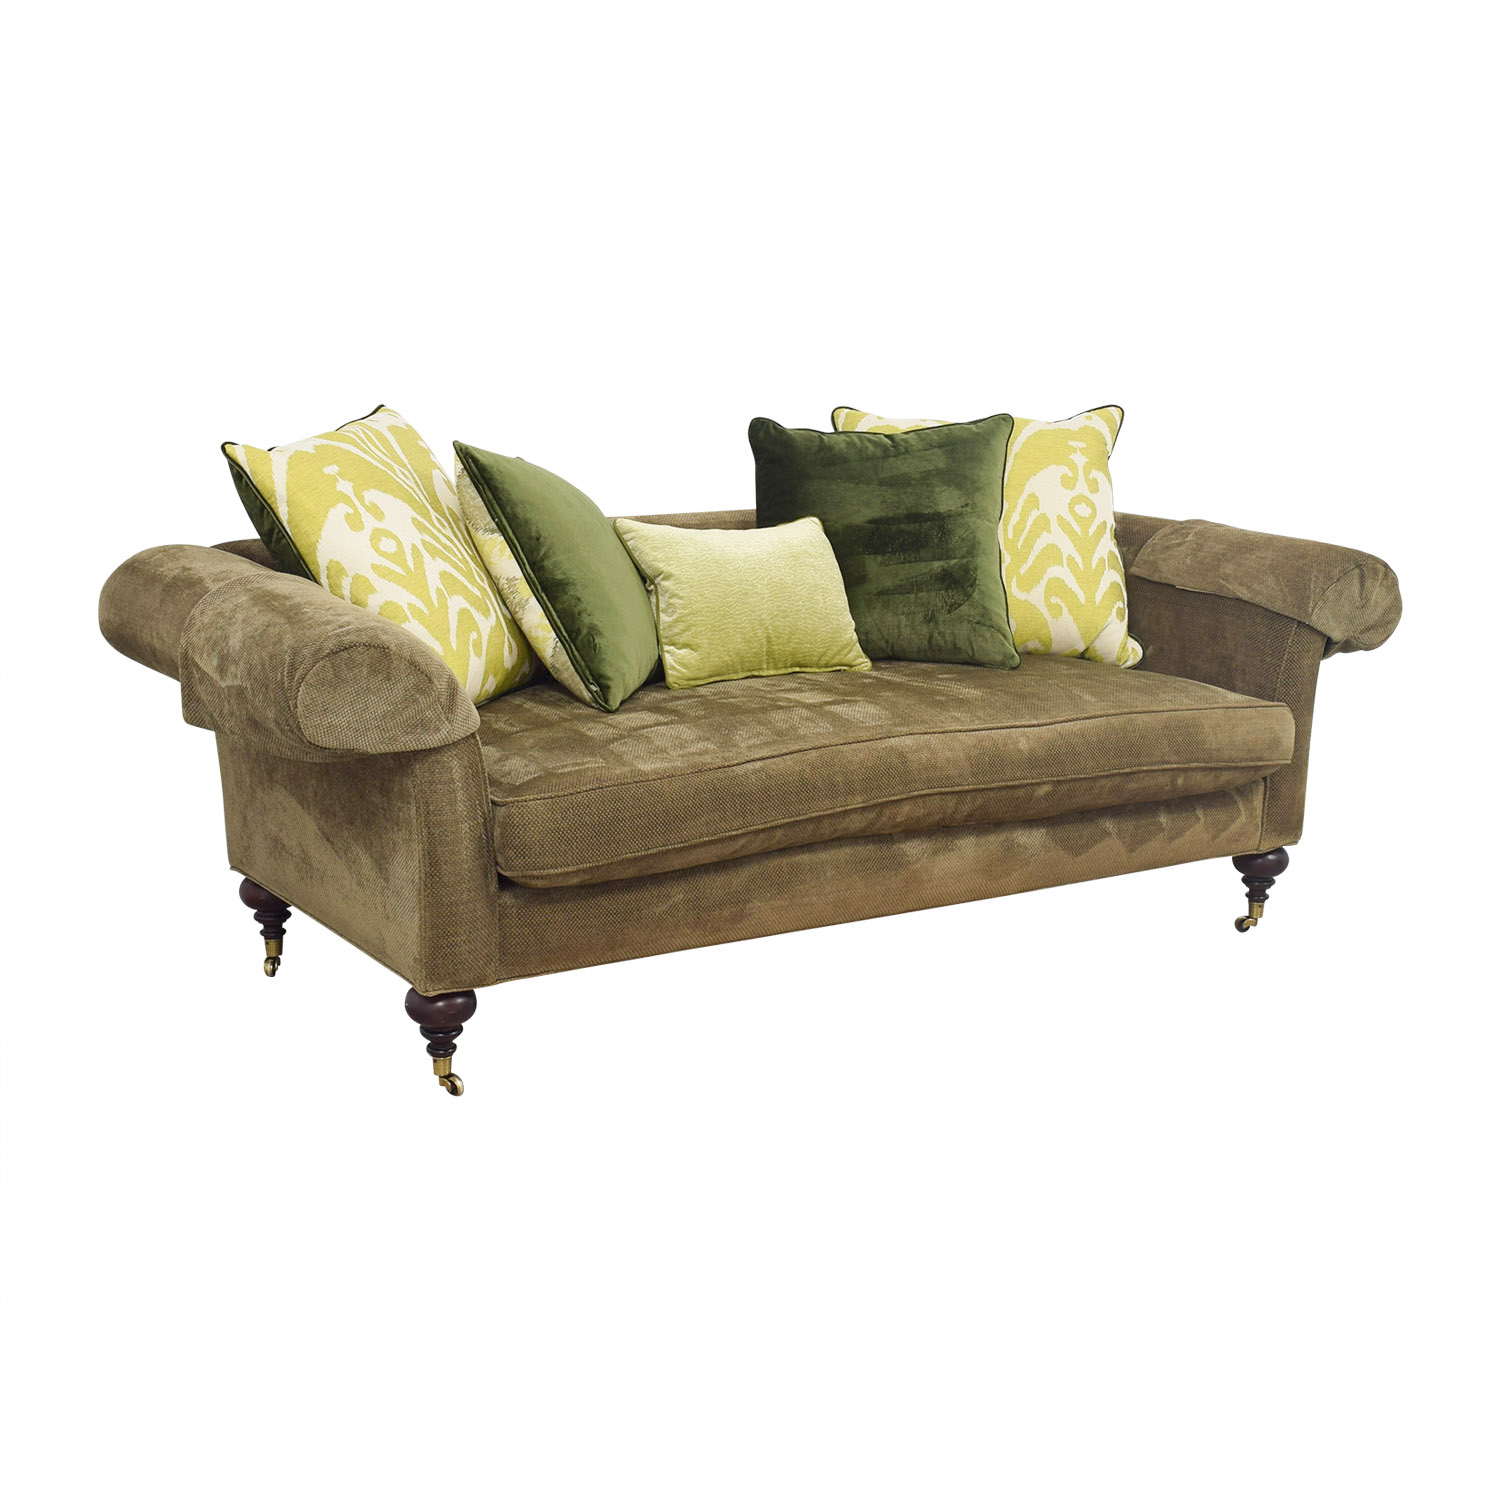 Lee Jofa Green Single Cushion Sofa On Castors